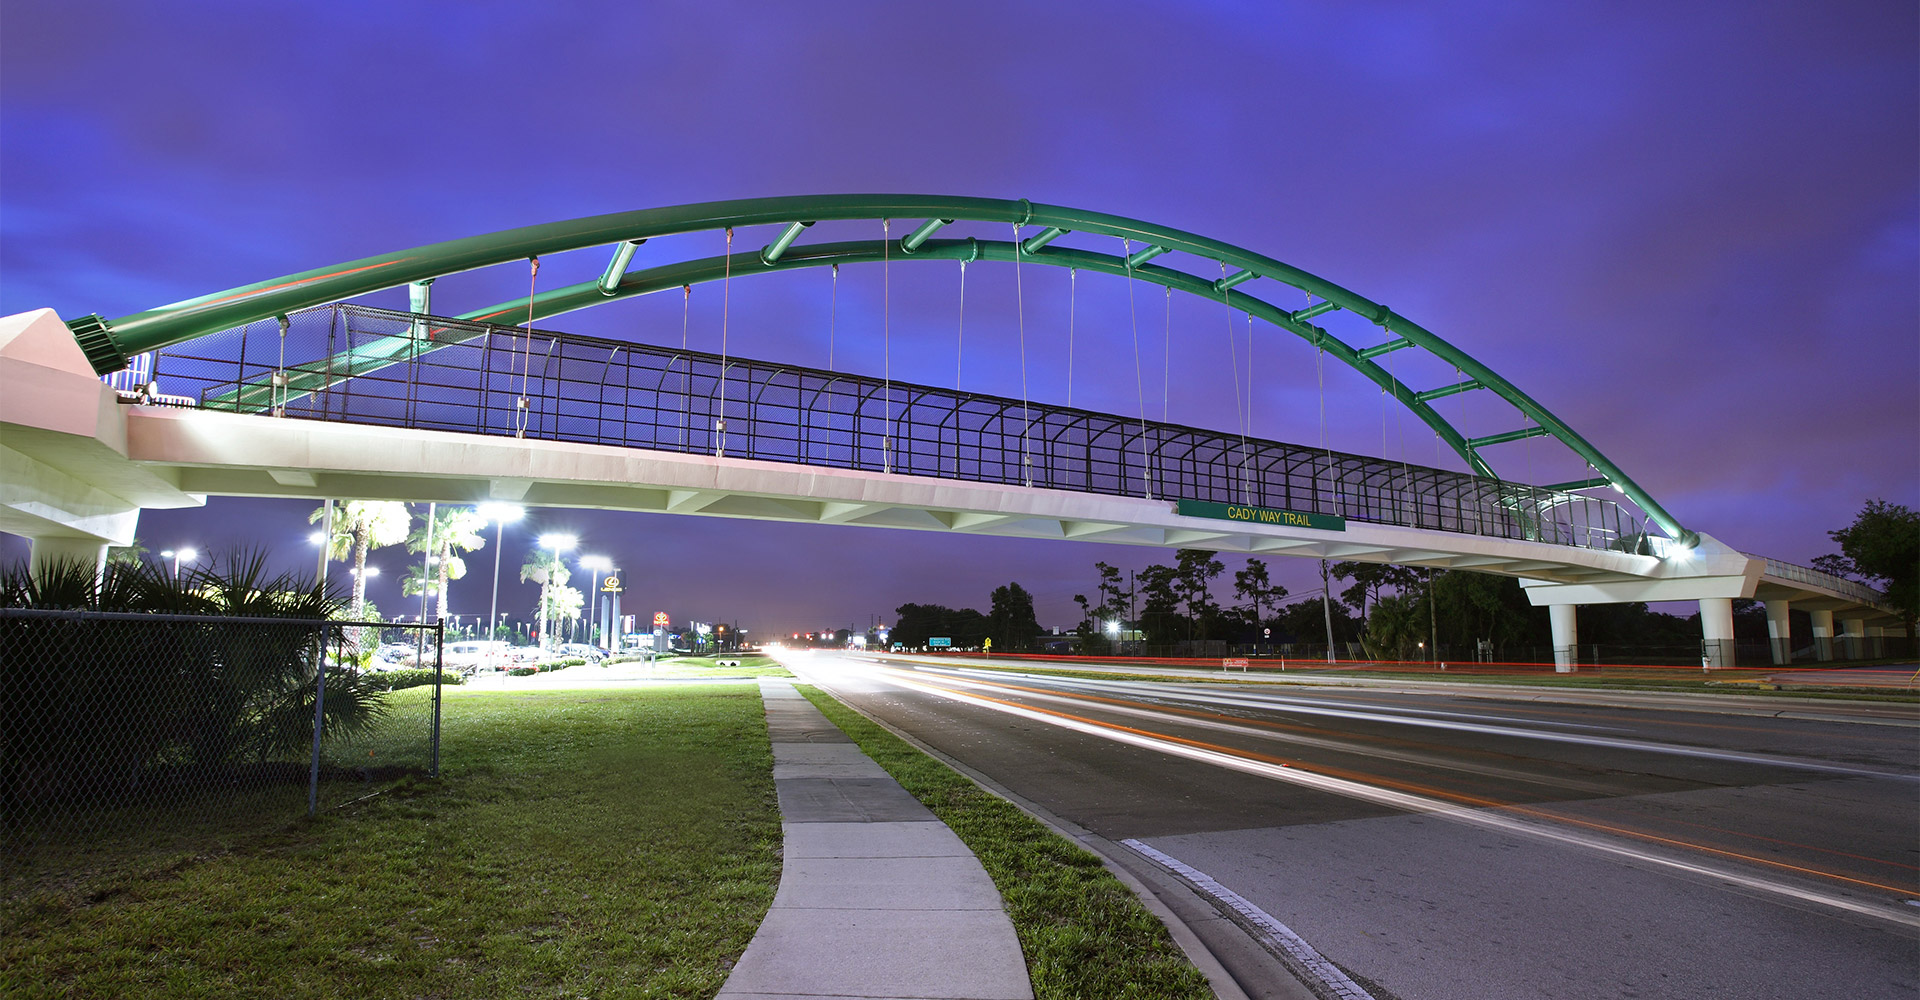 View of the Cady Way Trail and Pedestrian Bridge at dusk.